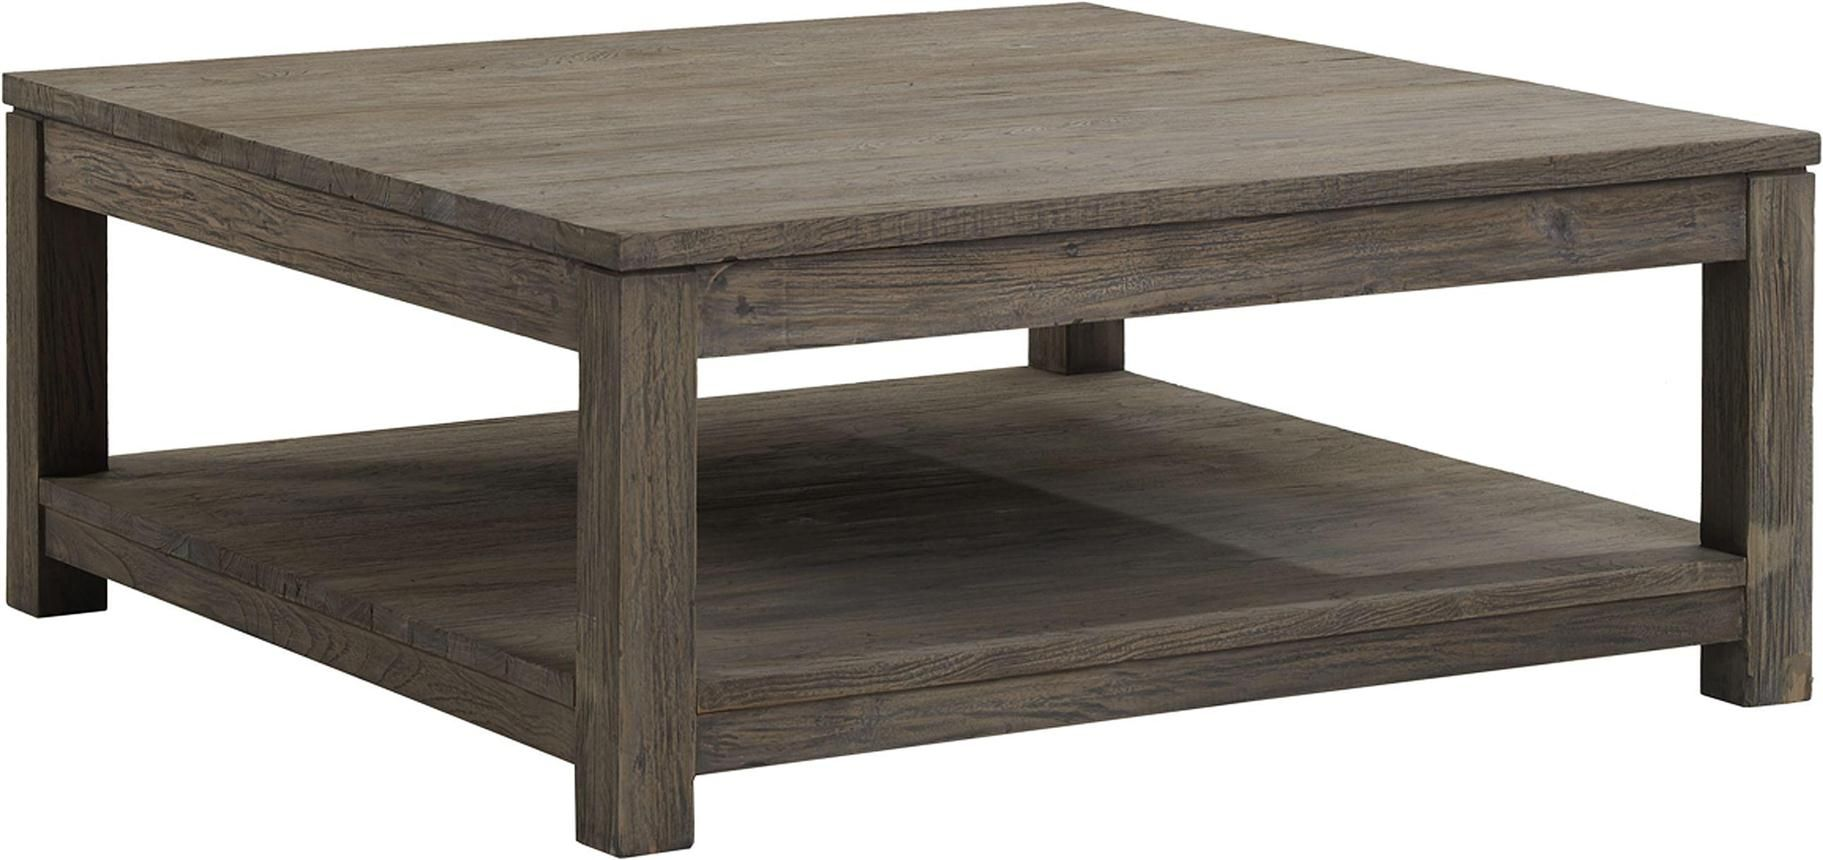 Image of oversized square coffee table KEYS CONDO Pinterest